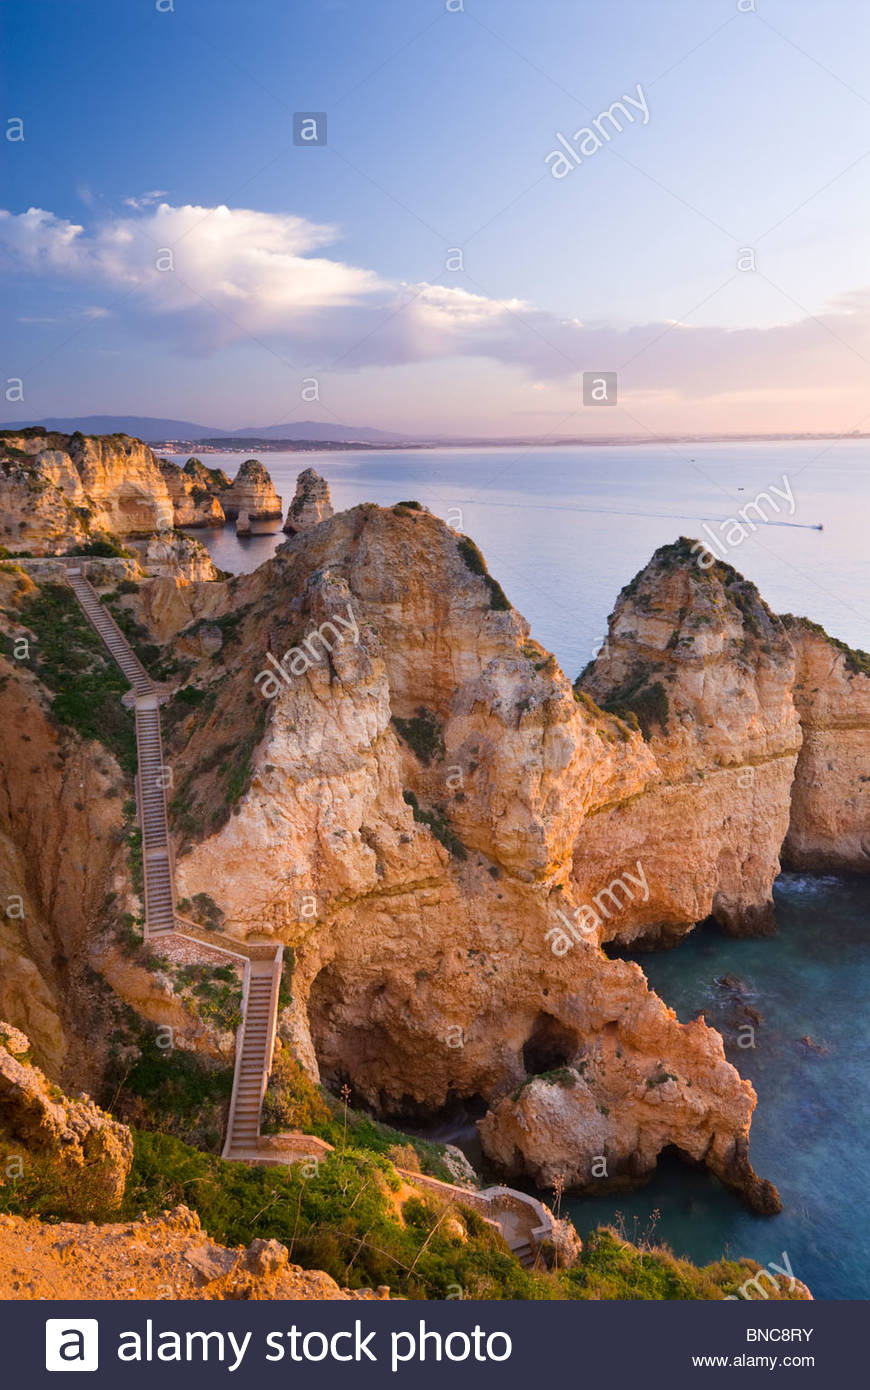 Steps leading down to the water at Ponta Da Piedade, Algarve, Portugal. - Stock Image